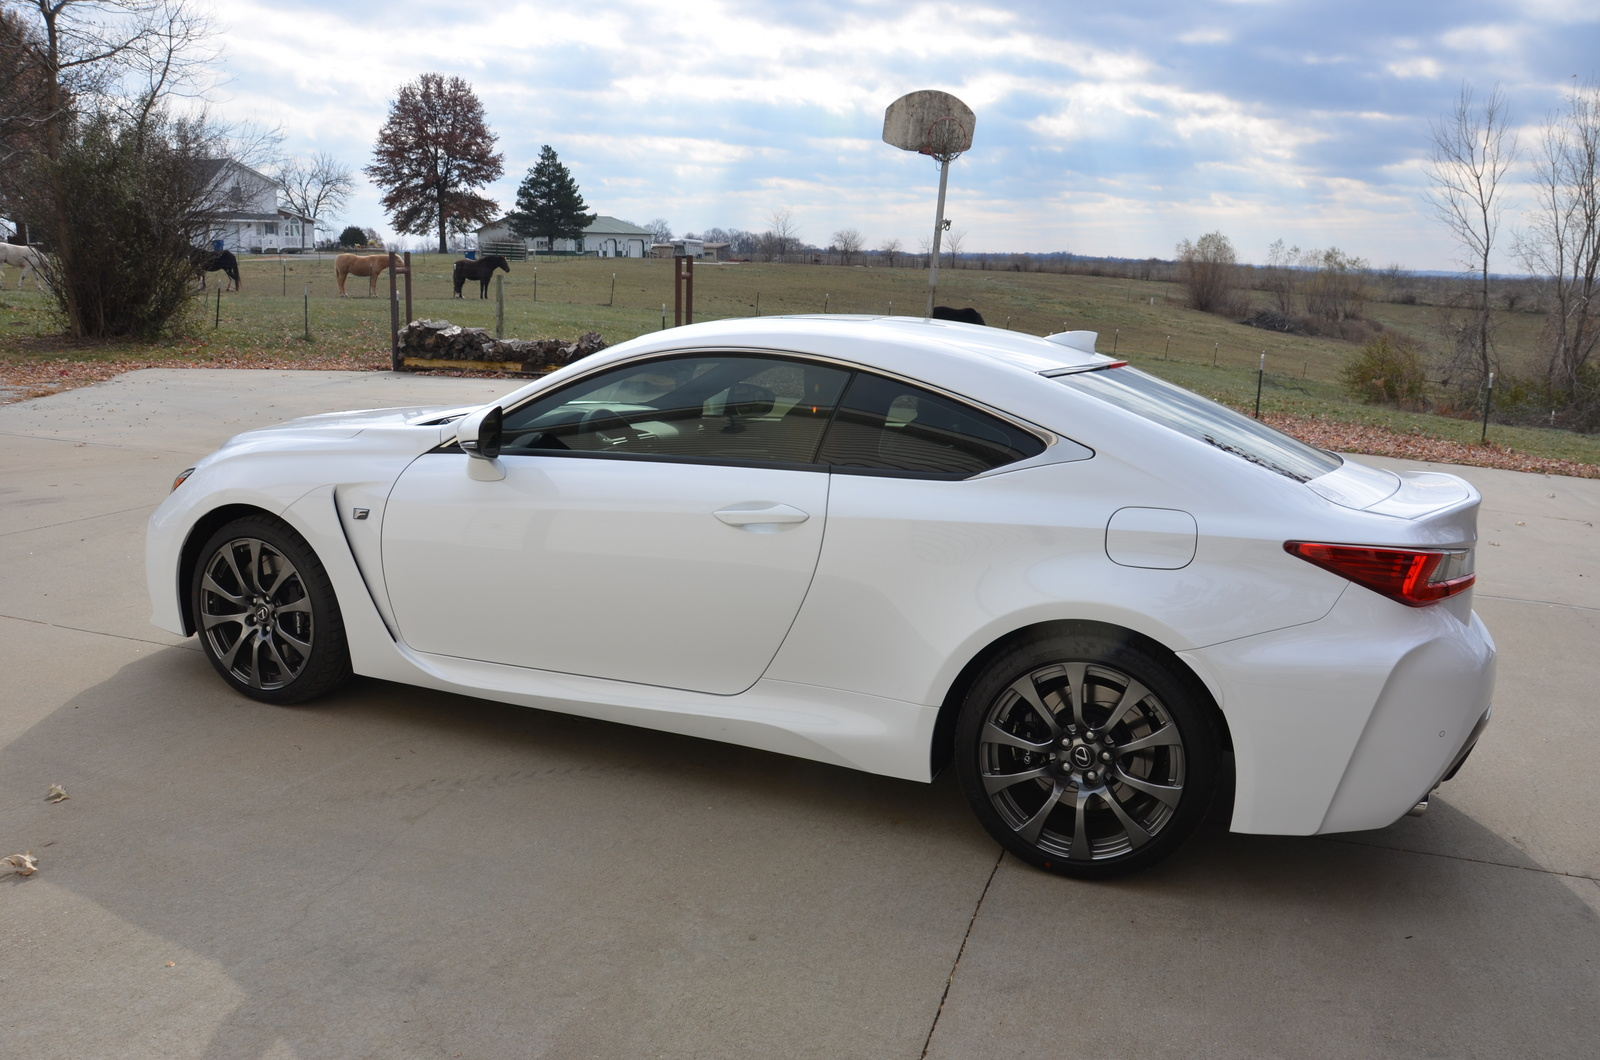 Lexus Dealers In Md >> New 2015 Lexus RC F For Sale - CarGurus